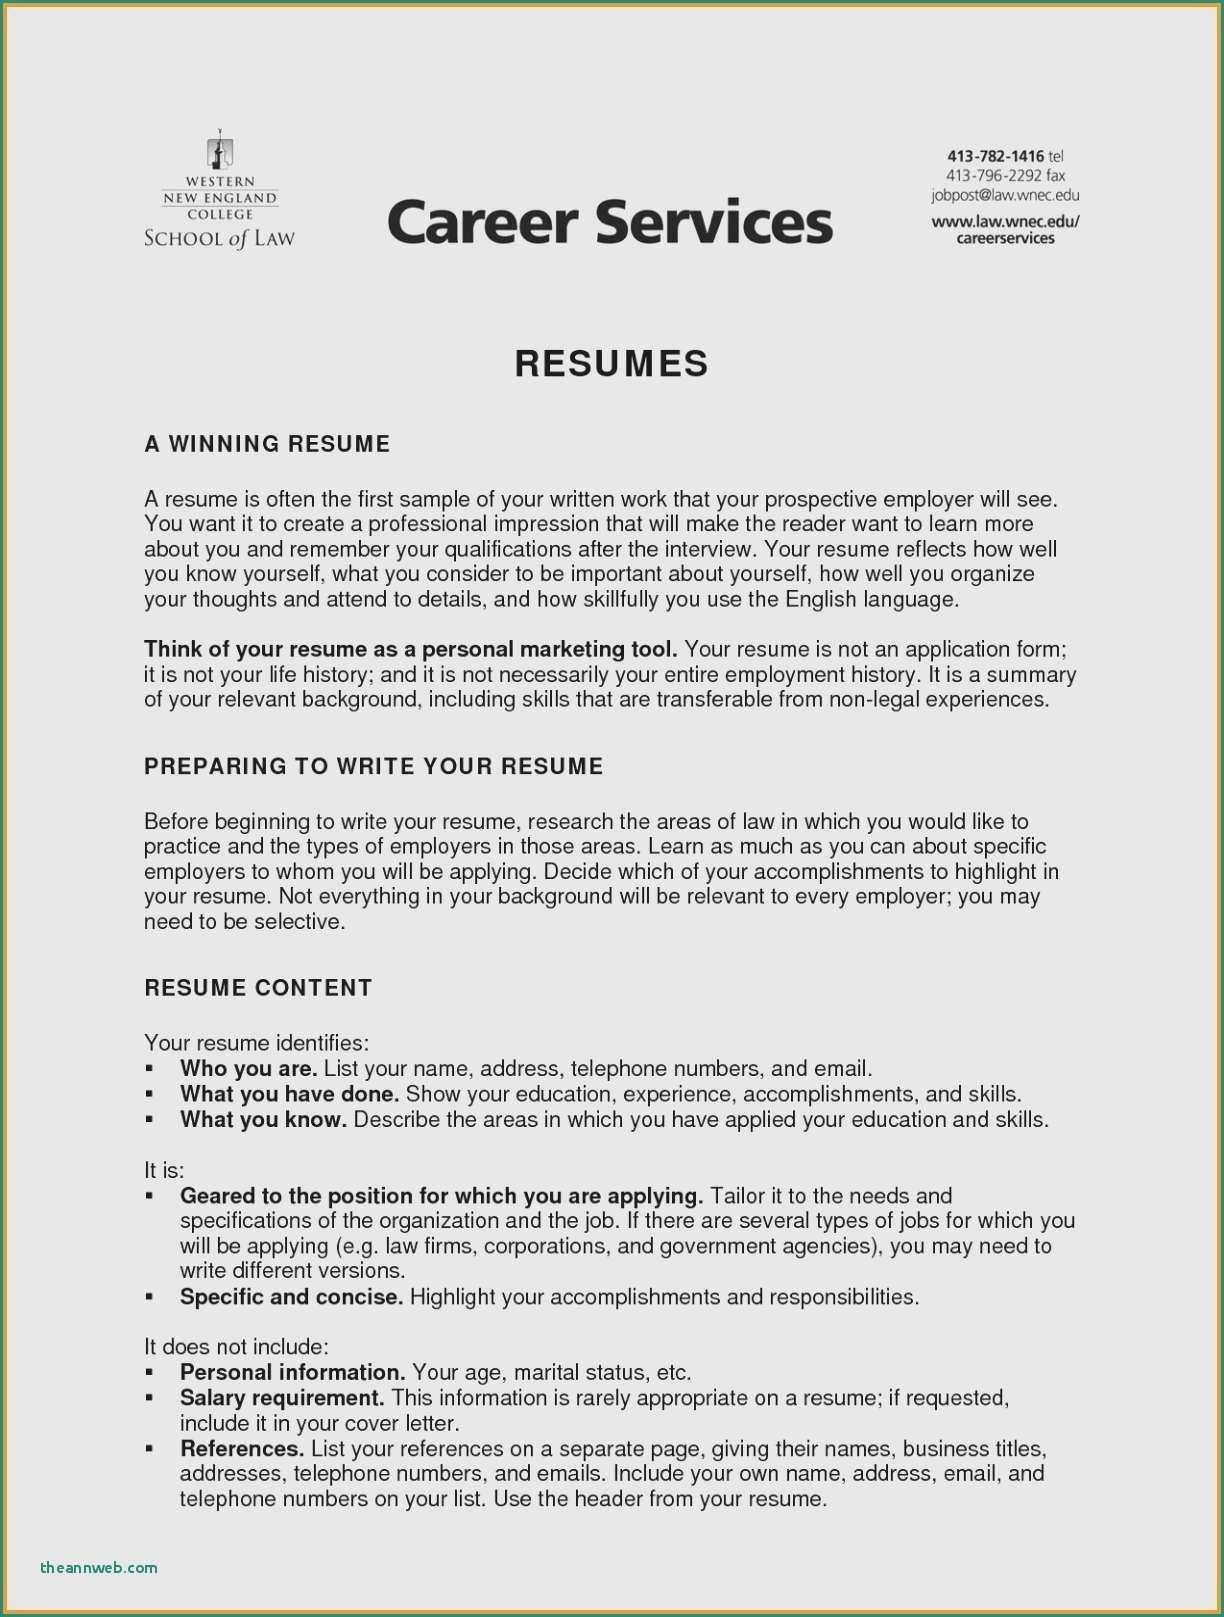 Job Title On Resume Fresh Good For A Cover Letter Awesome Example Personal Statement Mission Examples V